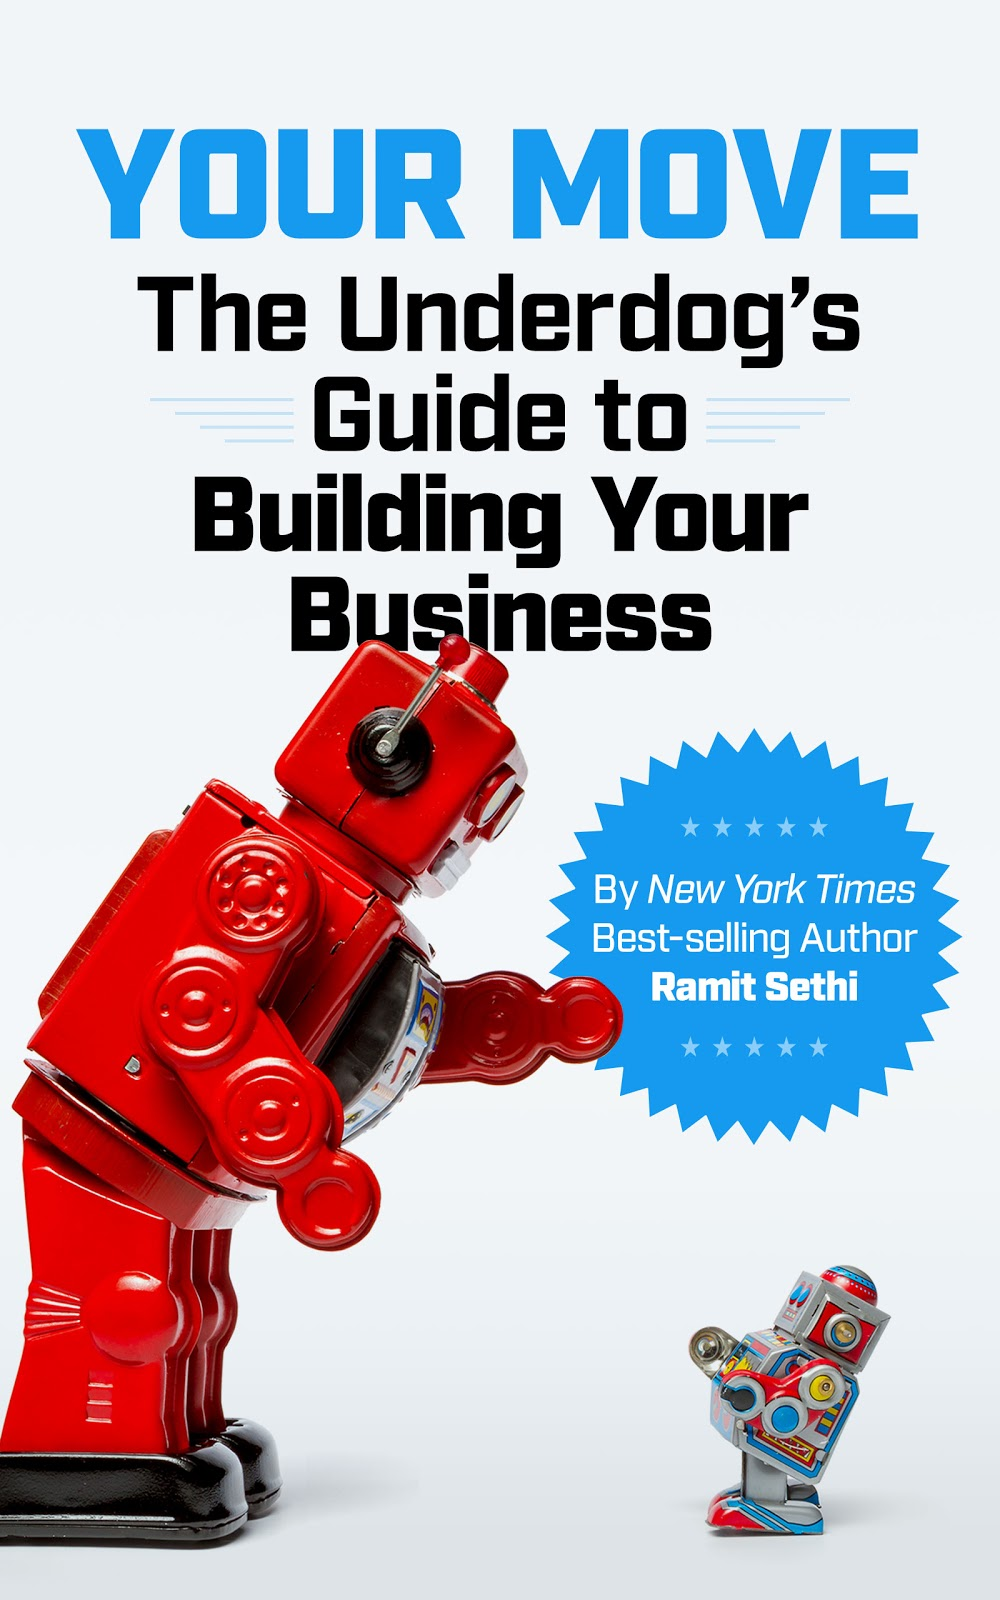 your-move-underdogs-guide-to-building-your-business.jpg